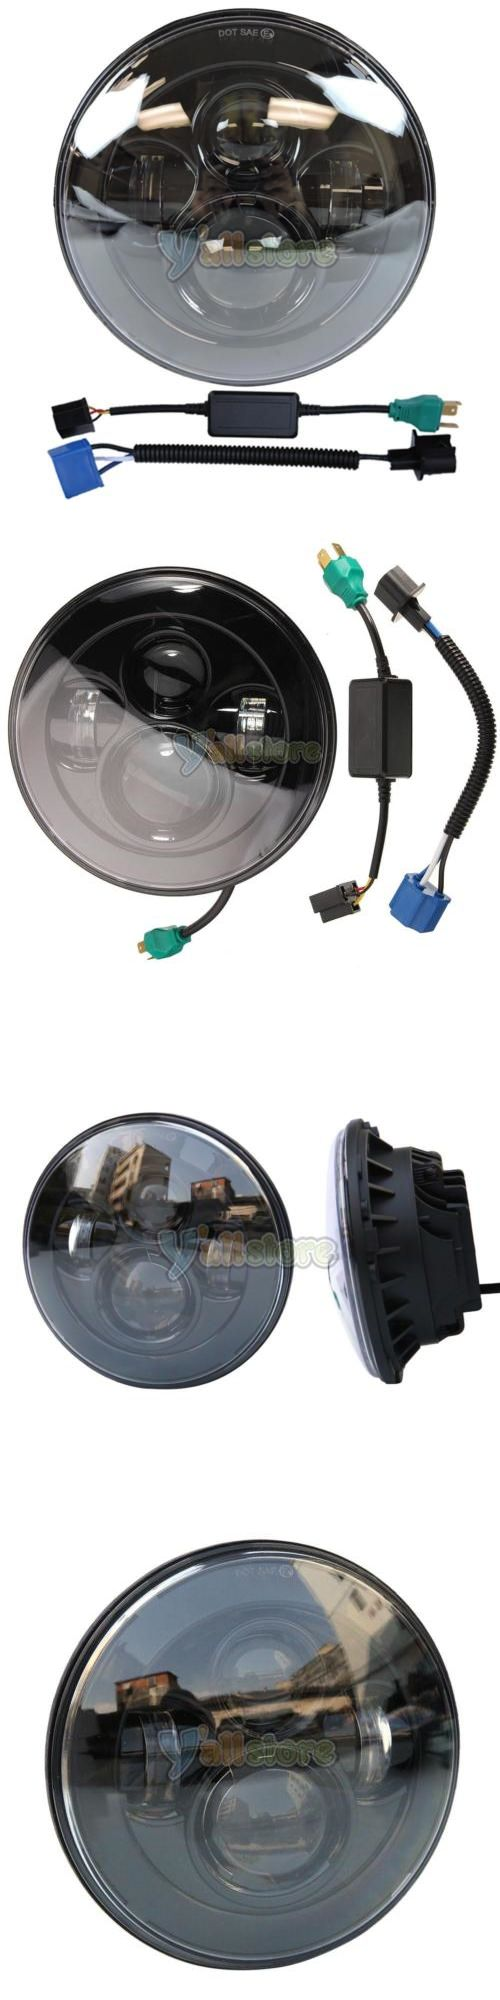 motorcycle parts: 7 Led Projector Daymaker Headlight For Harley Street Glide Softail Flhx Fld Blk -> BUY IT NOW ONLY: $52.19 on eBay!